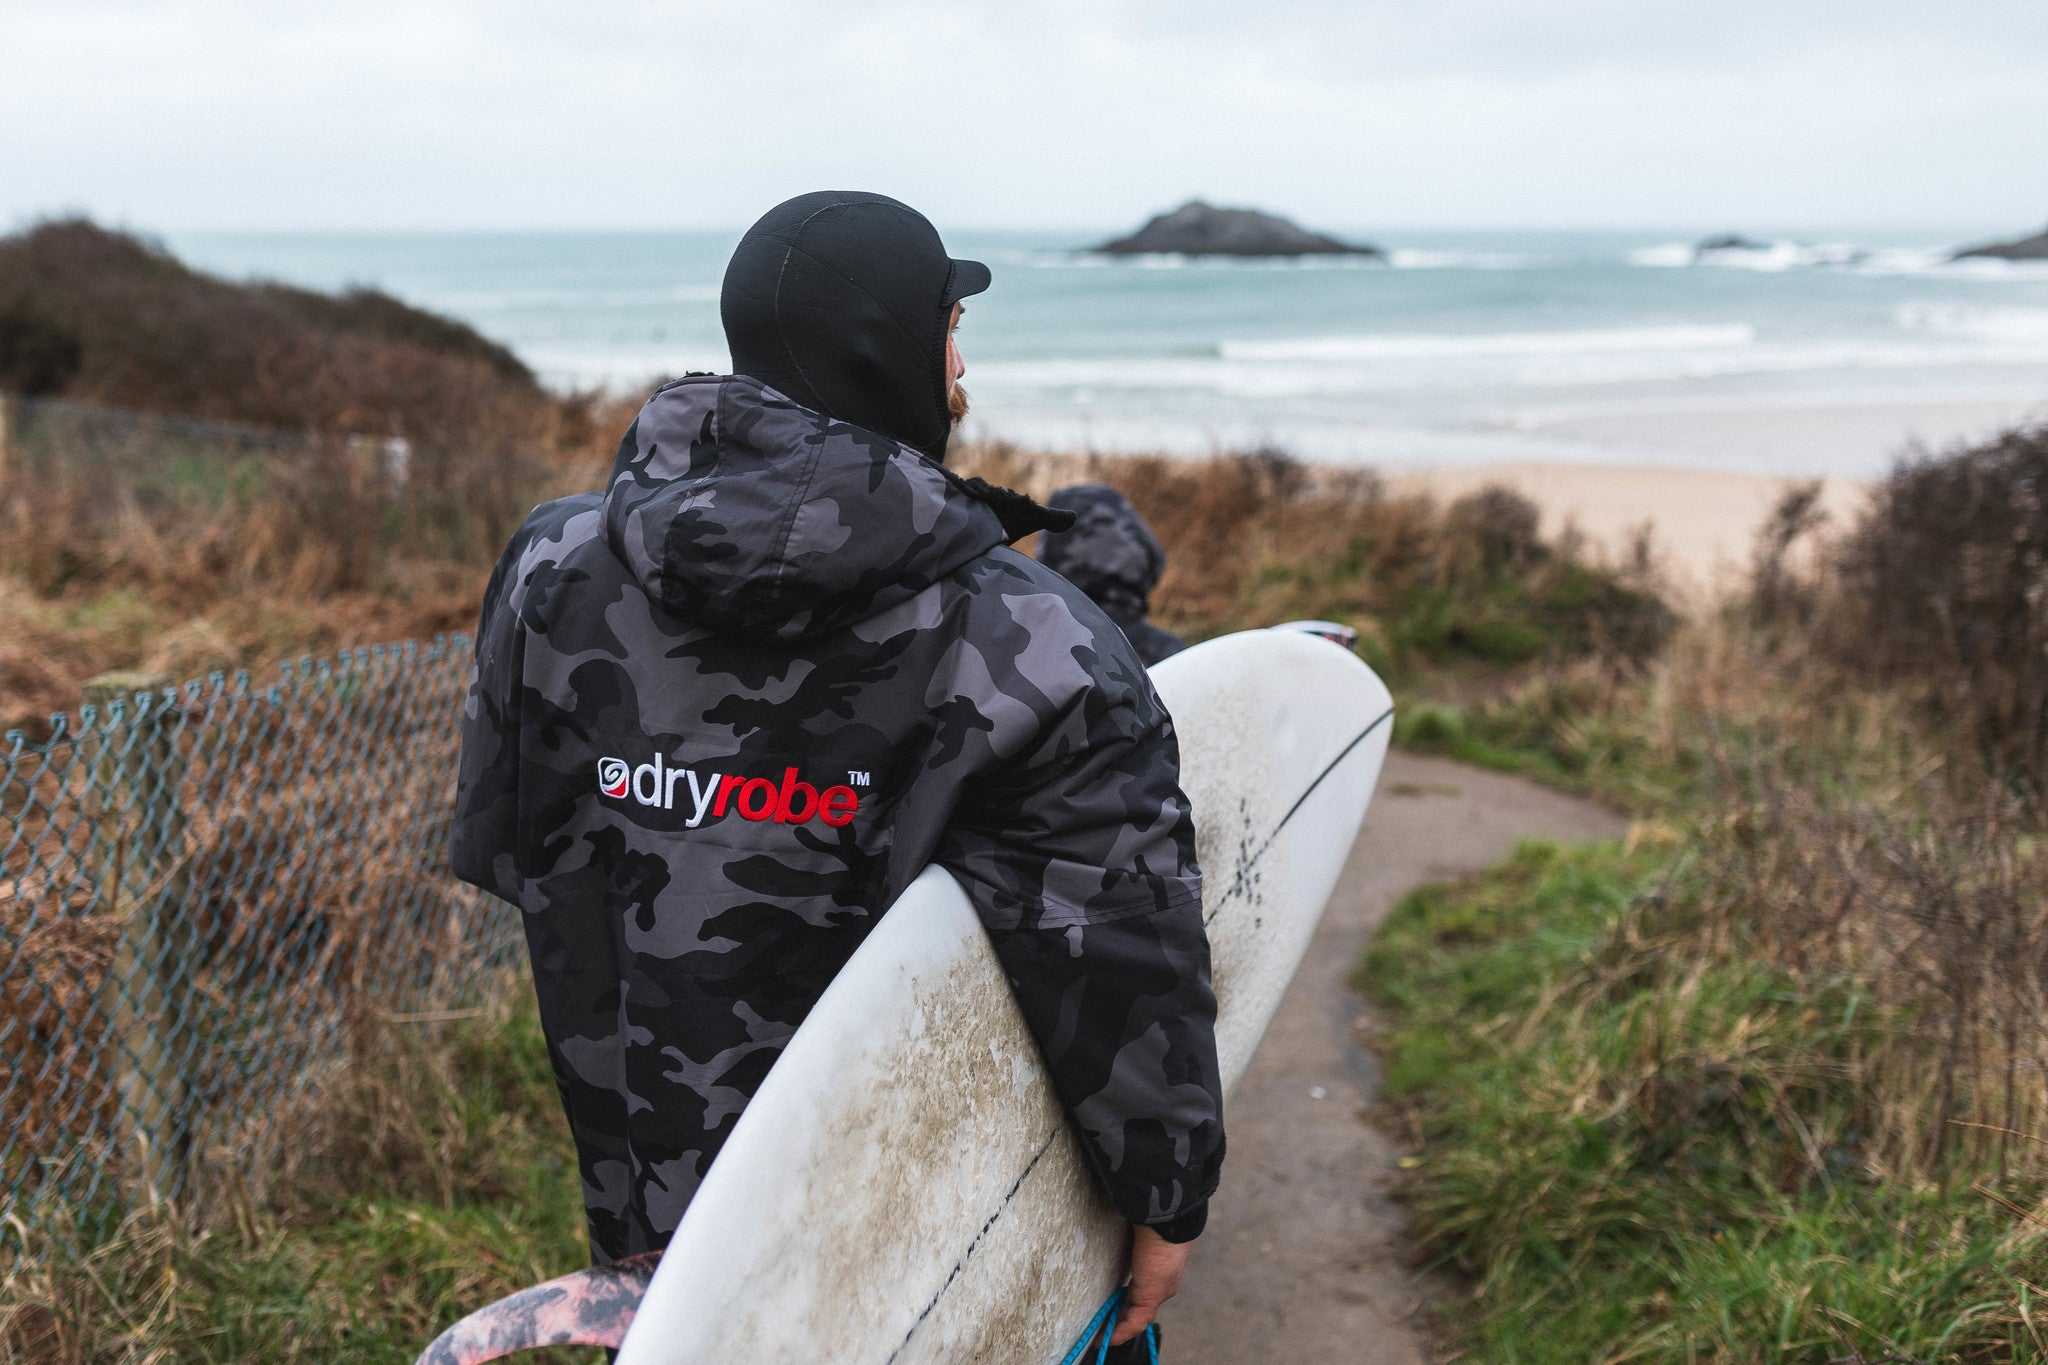 Ben skinner carry his surfboard to the beach whilst wear a Camo Black dryrobe Advance